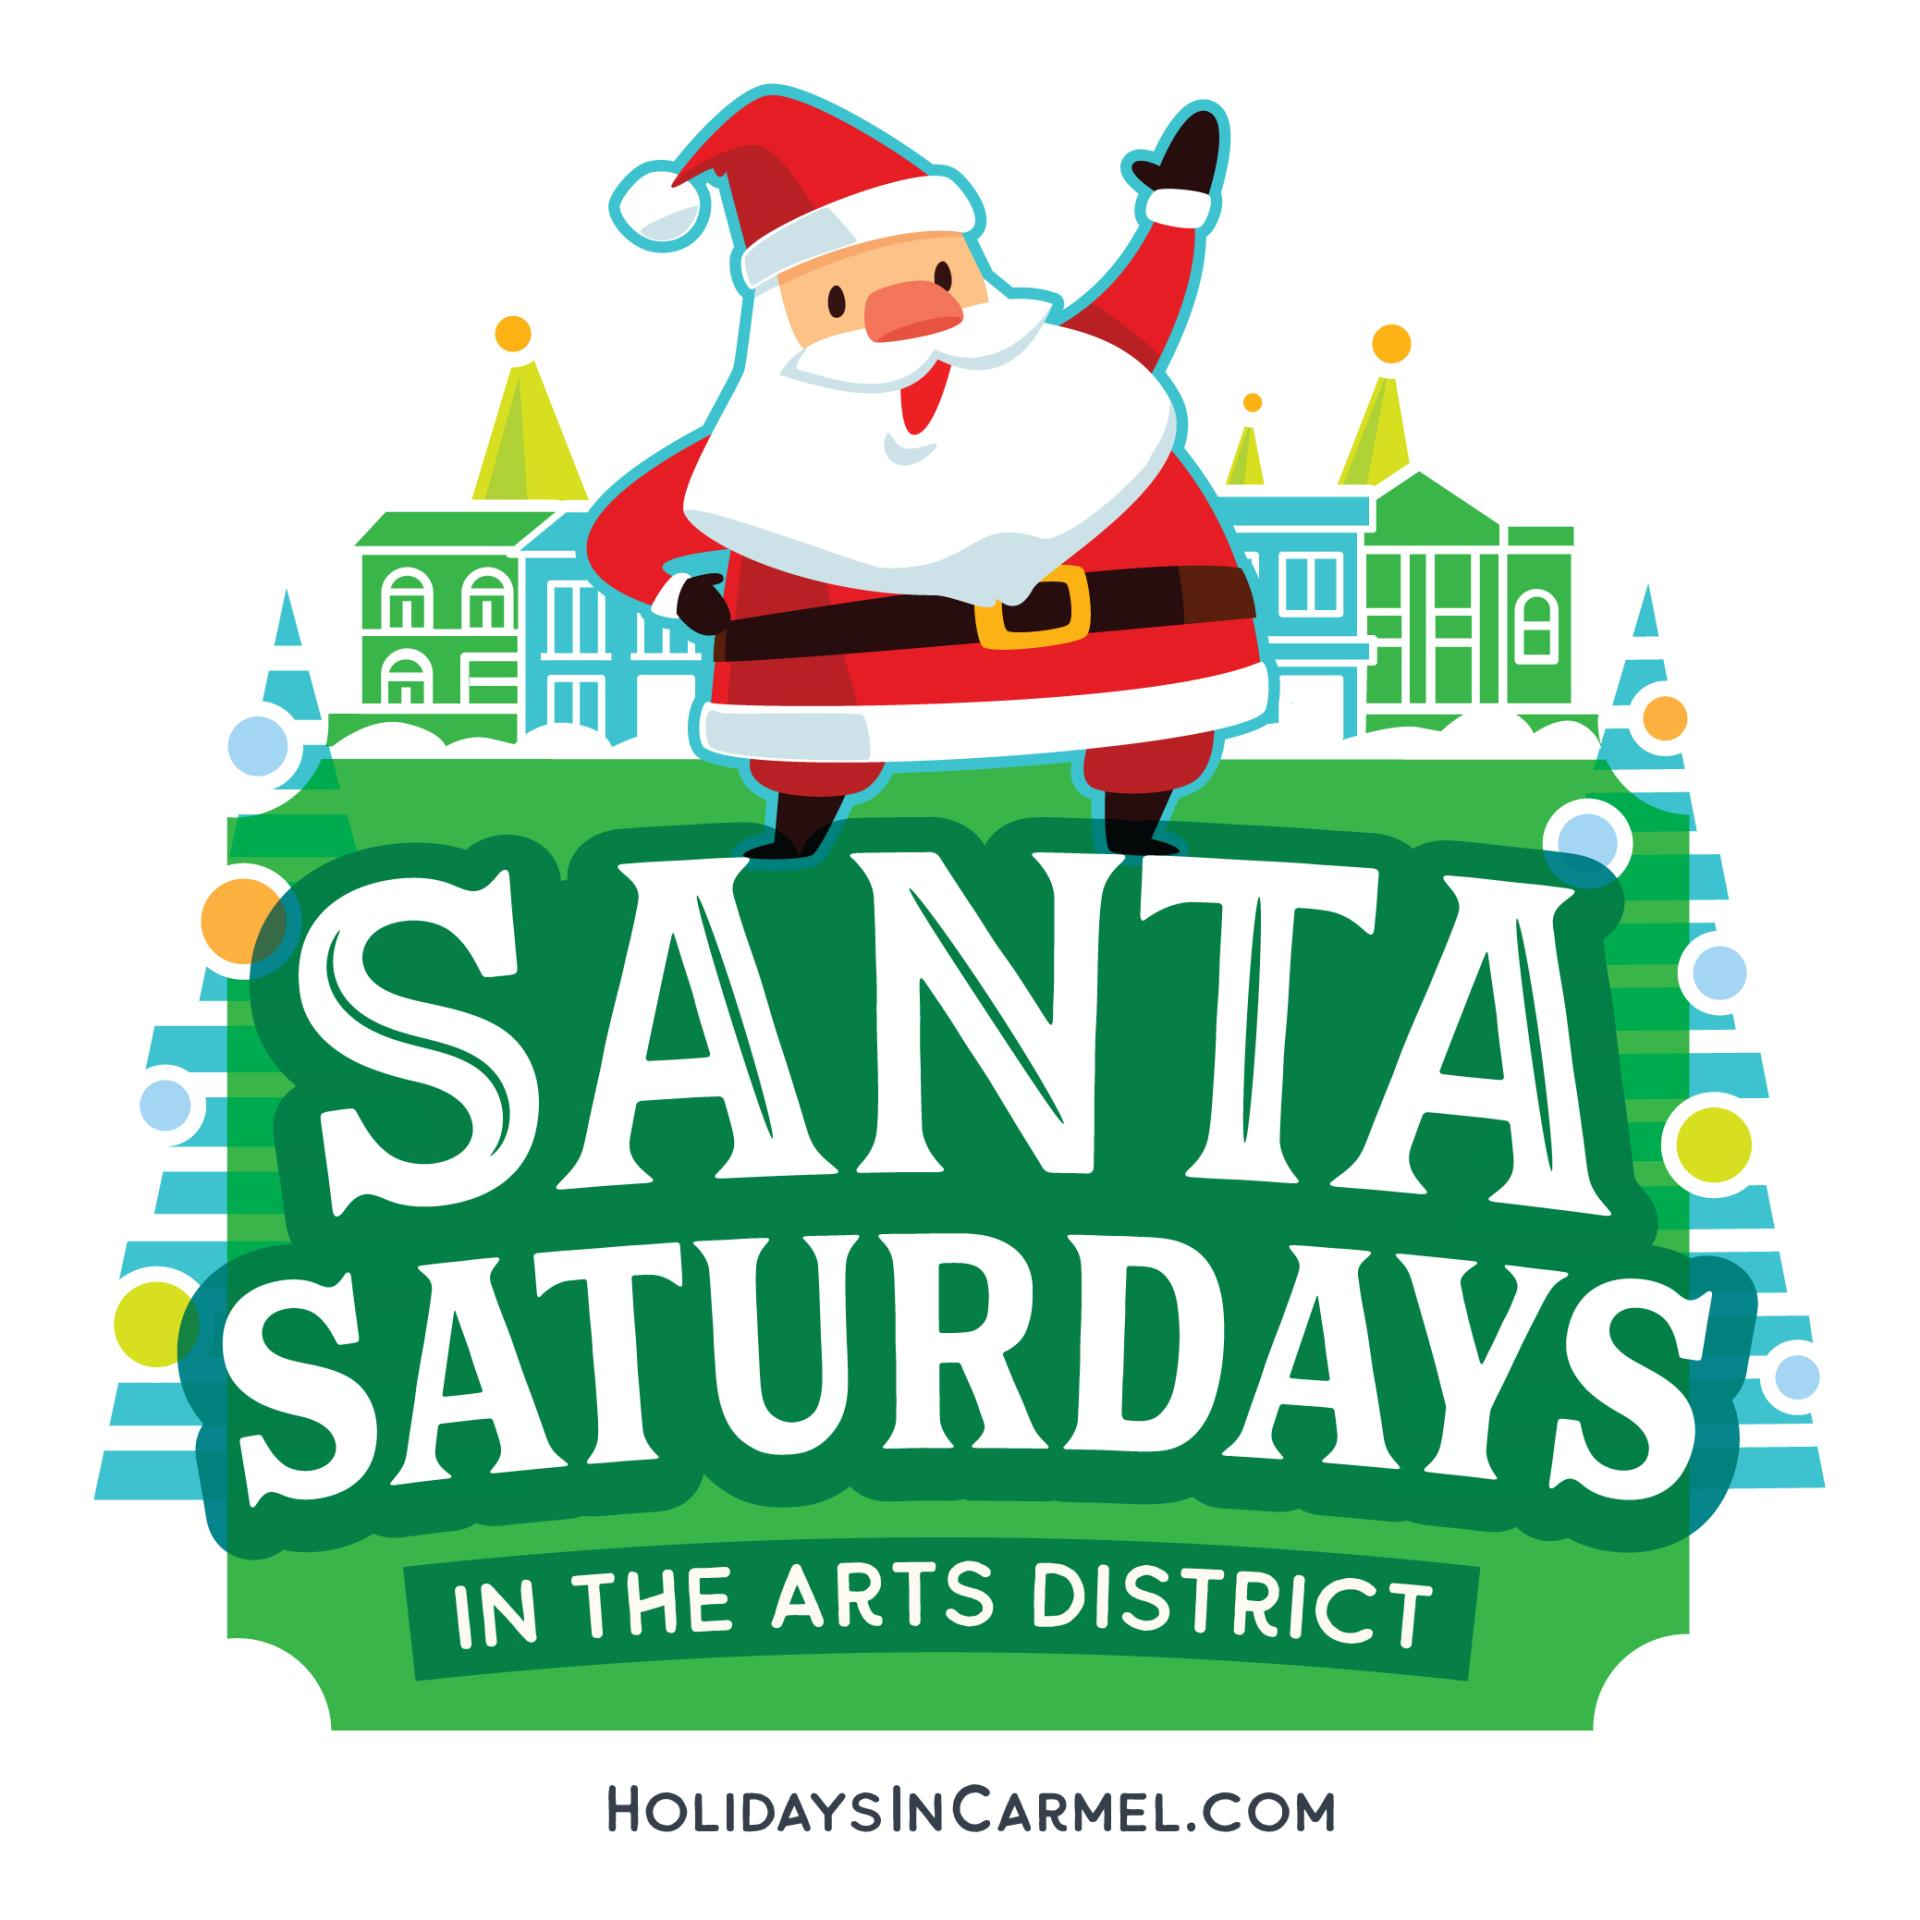 Carmel Santa Saturdays 2019